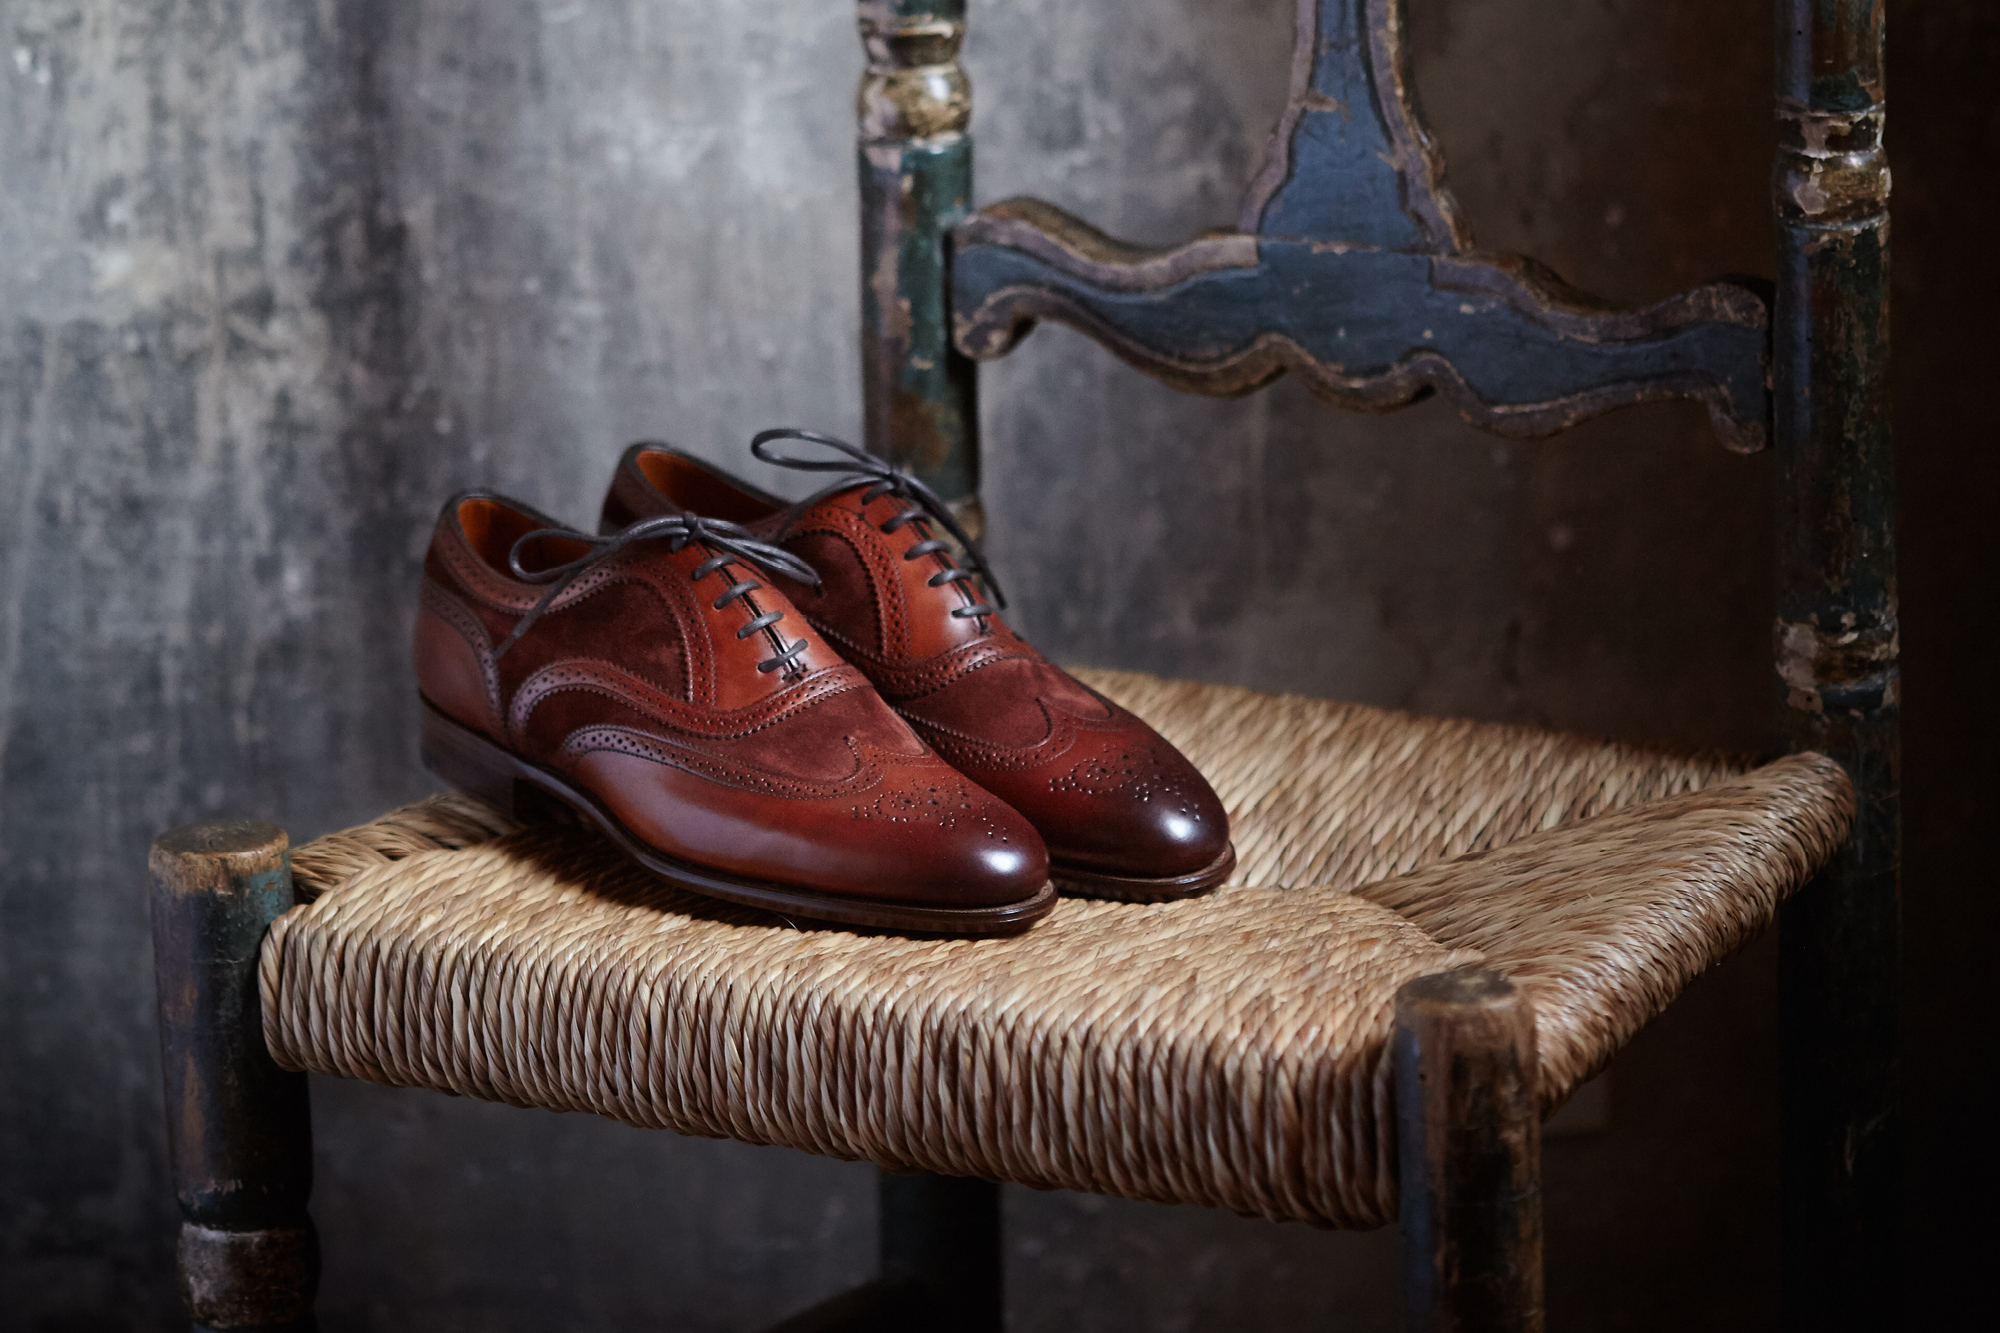 Edward Green made-to-order Ladies Malvern shoes in redwood leather and clove suede